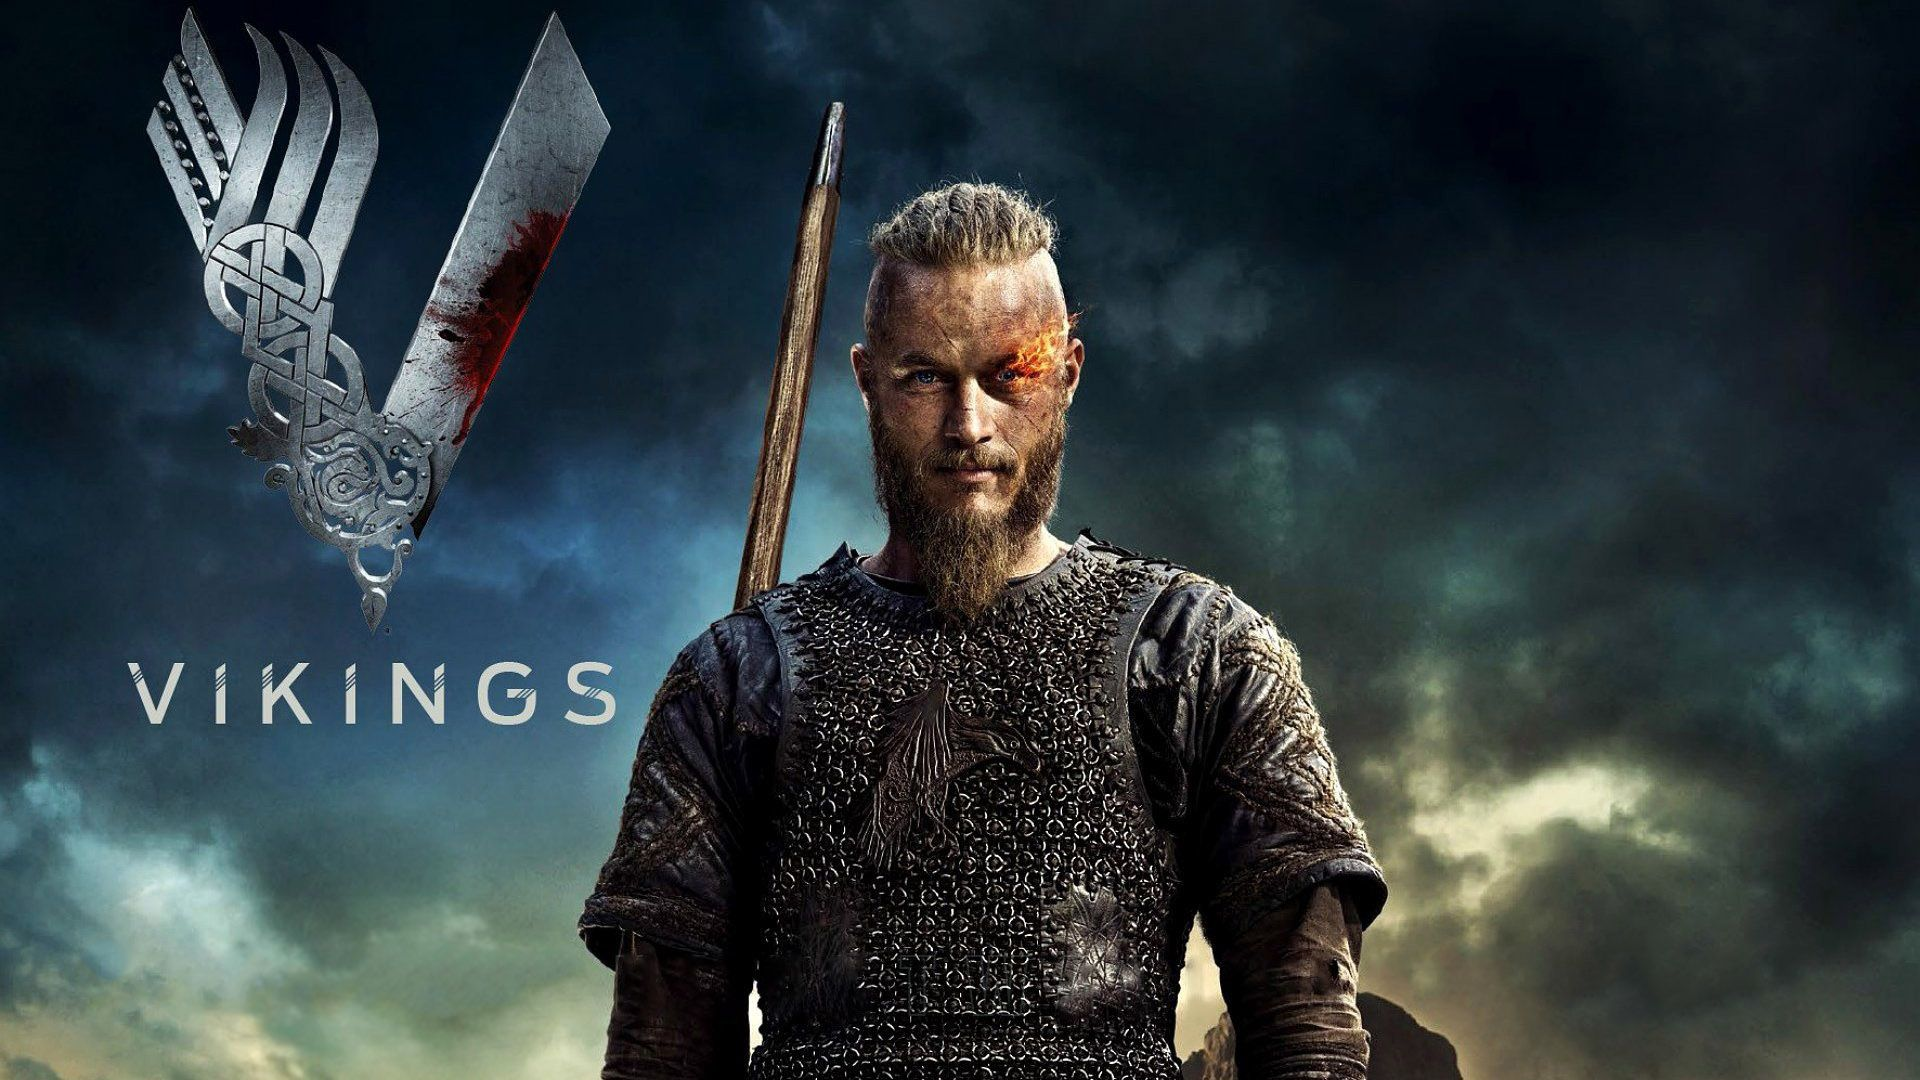 Get Travis Fimmel As Ragnar Lothbrok In Vikings Wallpaper Wide or HD from TV Series Wallpapers. Set Travis Fimmel As Ragnar Lothbrok In Vikings Wallpaper high resolution image as your desktop background. WallWideHD.com